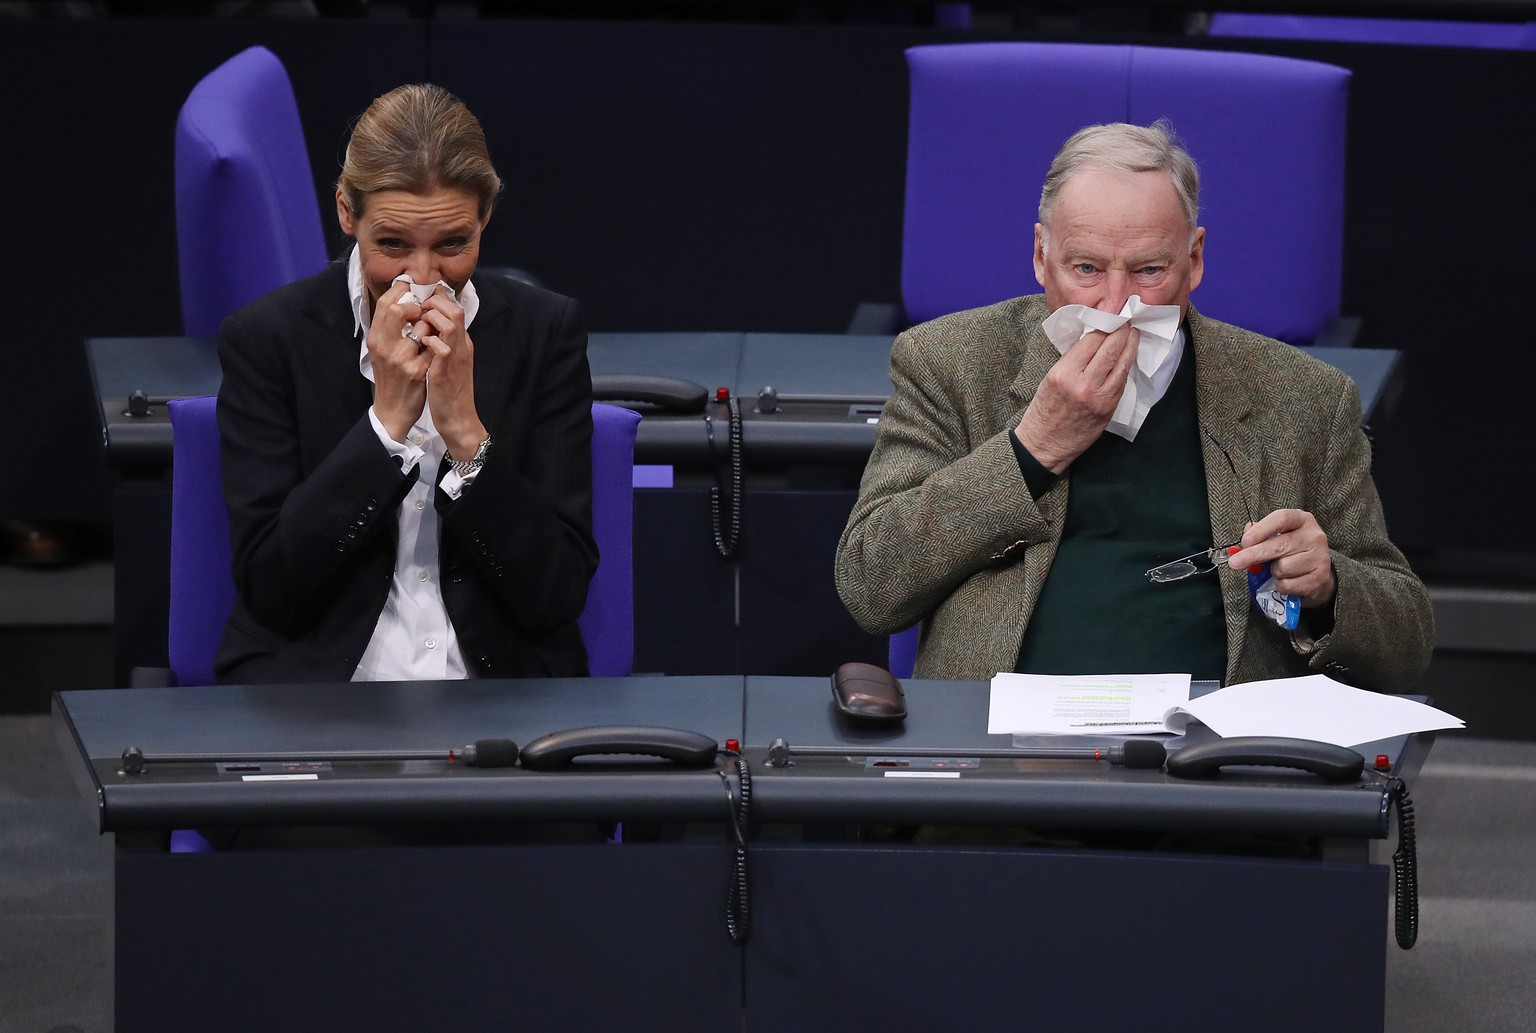 BERLIN, GERMANY - MARCH 14:  Alice Weidel and Alexander Gauland, Bundestag faction leaders of the right-wing Alternative for Germany (AfD) political party, blow their noses shortly before German Chancellor Angela Merkel took her oath to serve her fourth term as chancellor following Merkel's election by the Bundestag on March 14, 2018 in Berlin, Germany. Members of the new German government, a coalition between Christian Democrats (CDU/CSU) and Social Democrats (SPD), were sworn in today and will begin work immediately. The new government took the longest to create of any government in modern German history following elections last September that left the German Christian Democrats (CDU) as the strongest party but with too few votes in order to have a strong hand in determining the next coalition.  (Photo by Sean Gallup/Getty Images)